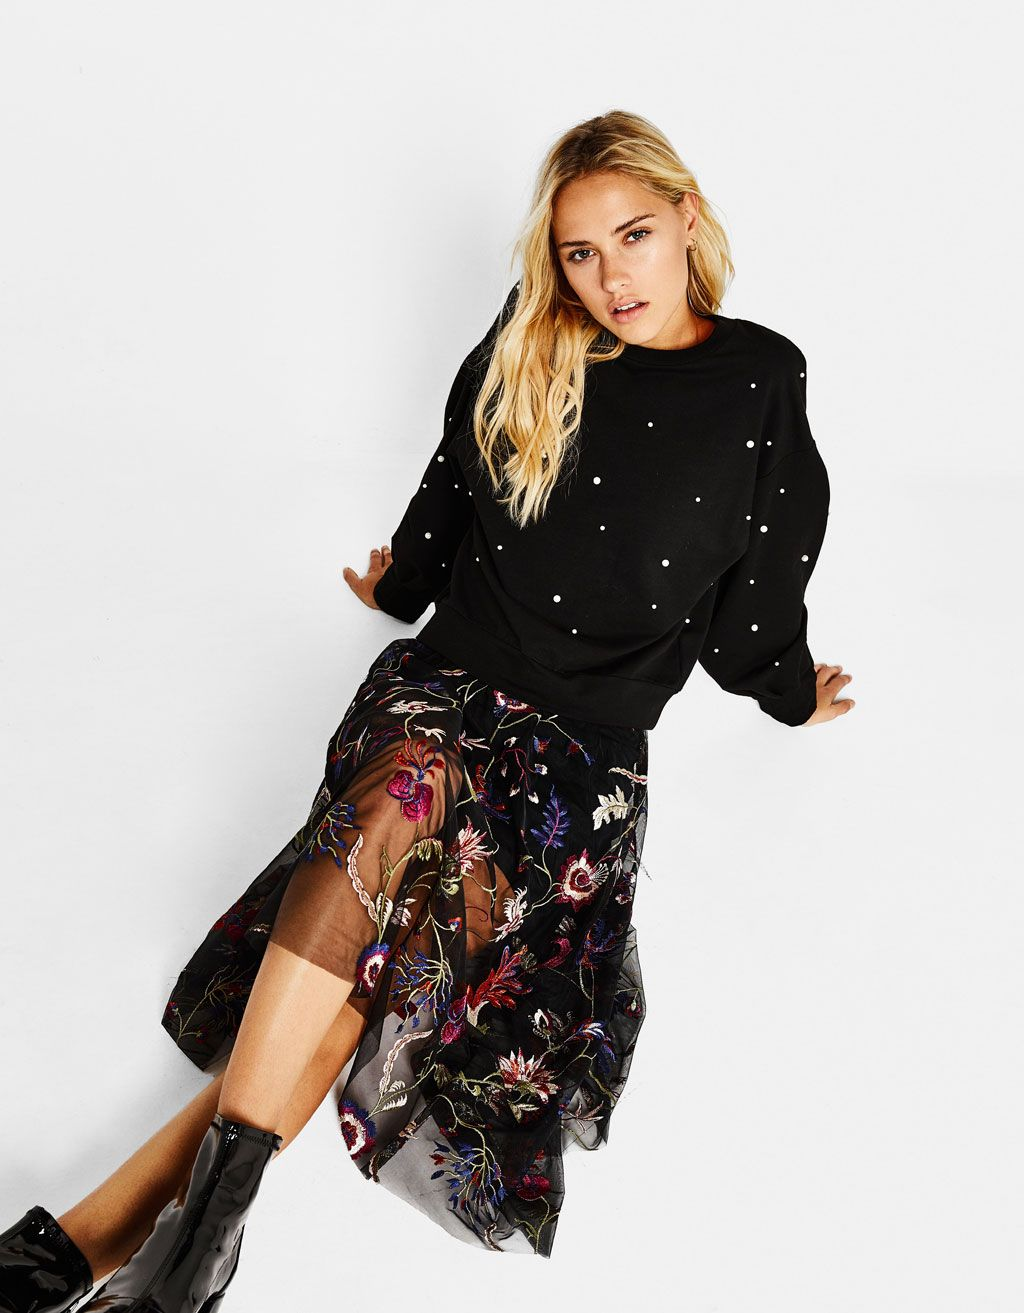 06a9765040 Bershka United States - Tulle skirt with floral embroidery